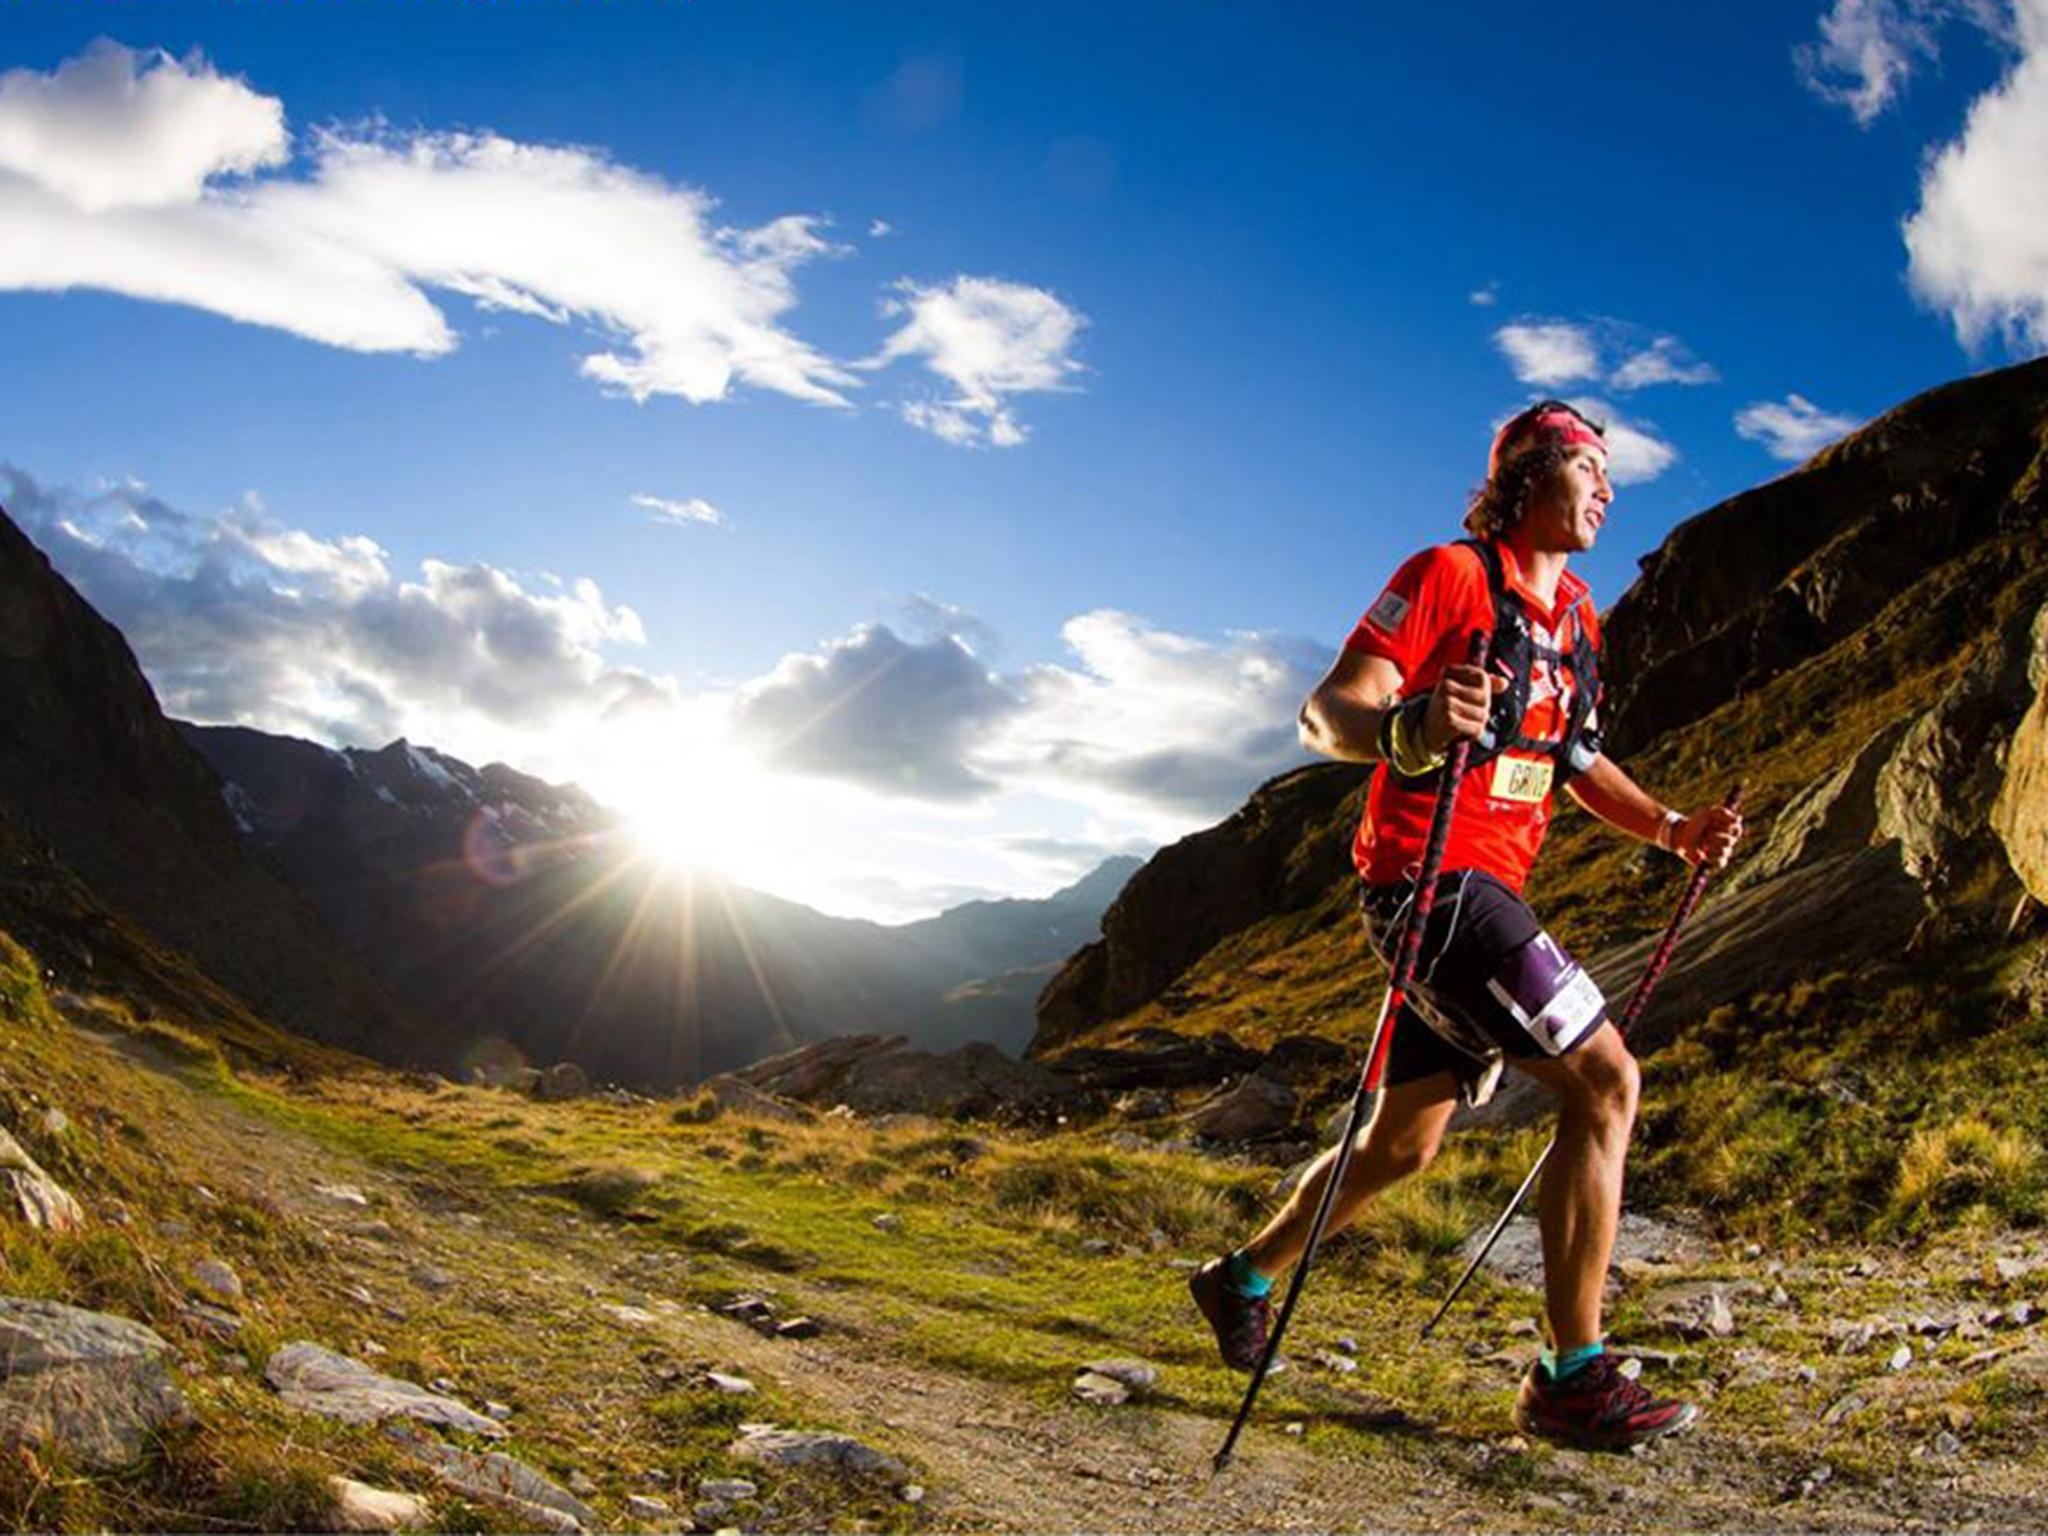 Blood, sweat and hallunications: The gruelling experiences of an ultra-marathon runner